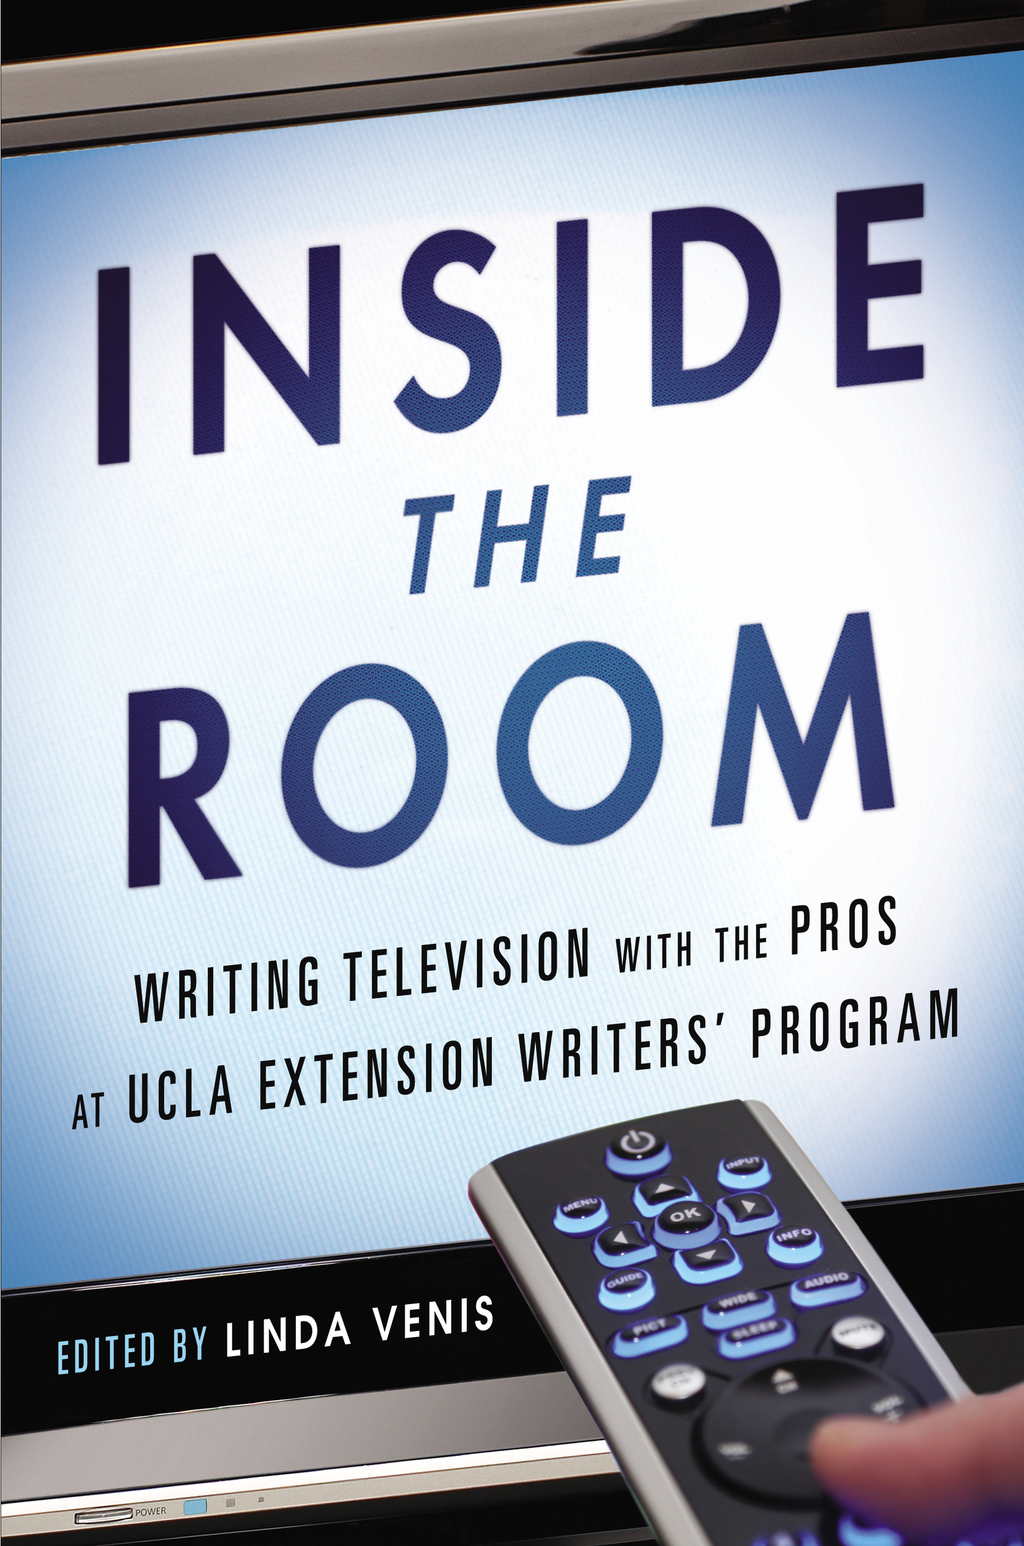 Inside the Room Writing Television with the Pros at UCLA Extension Writers'Program